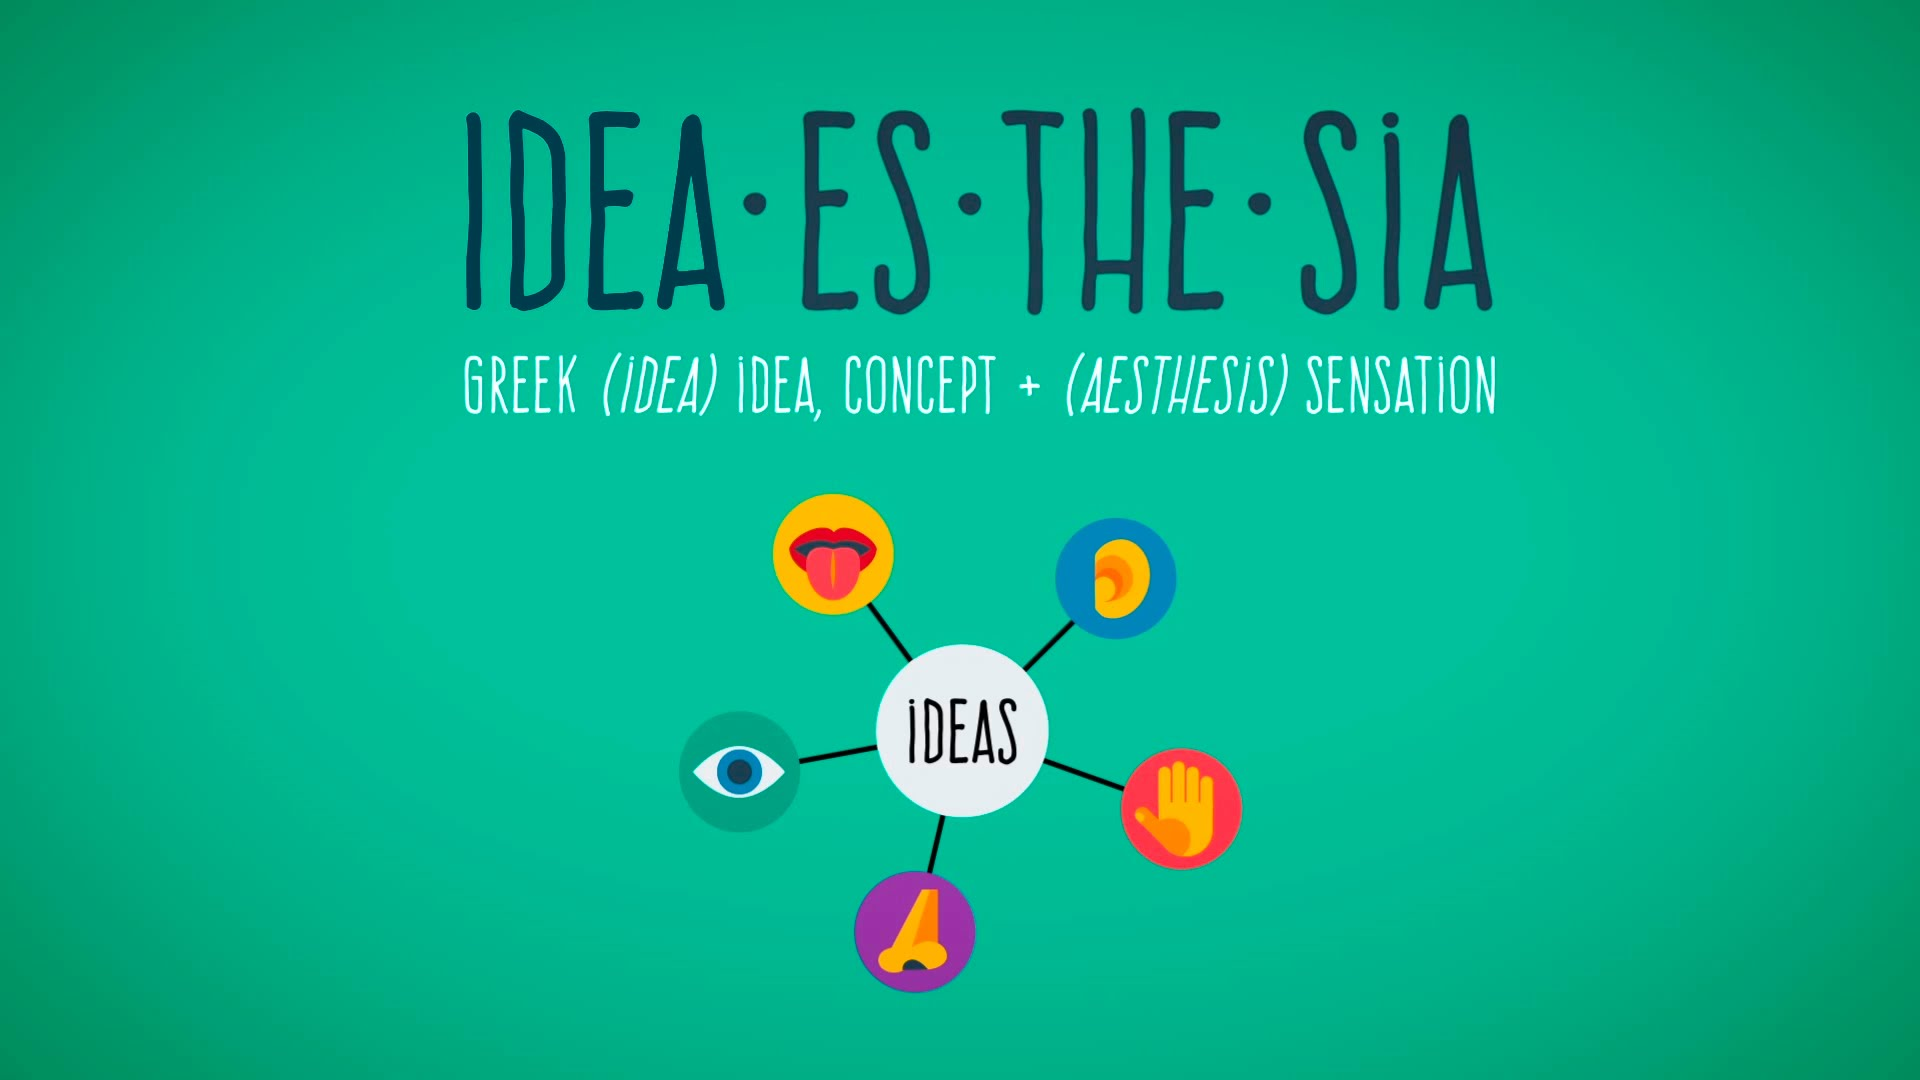 A TED-Ed Animation Explains How Our Brains Process Sensory Data and the Theory of Ideasthesia